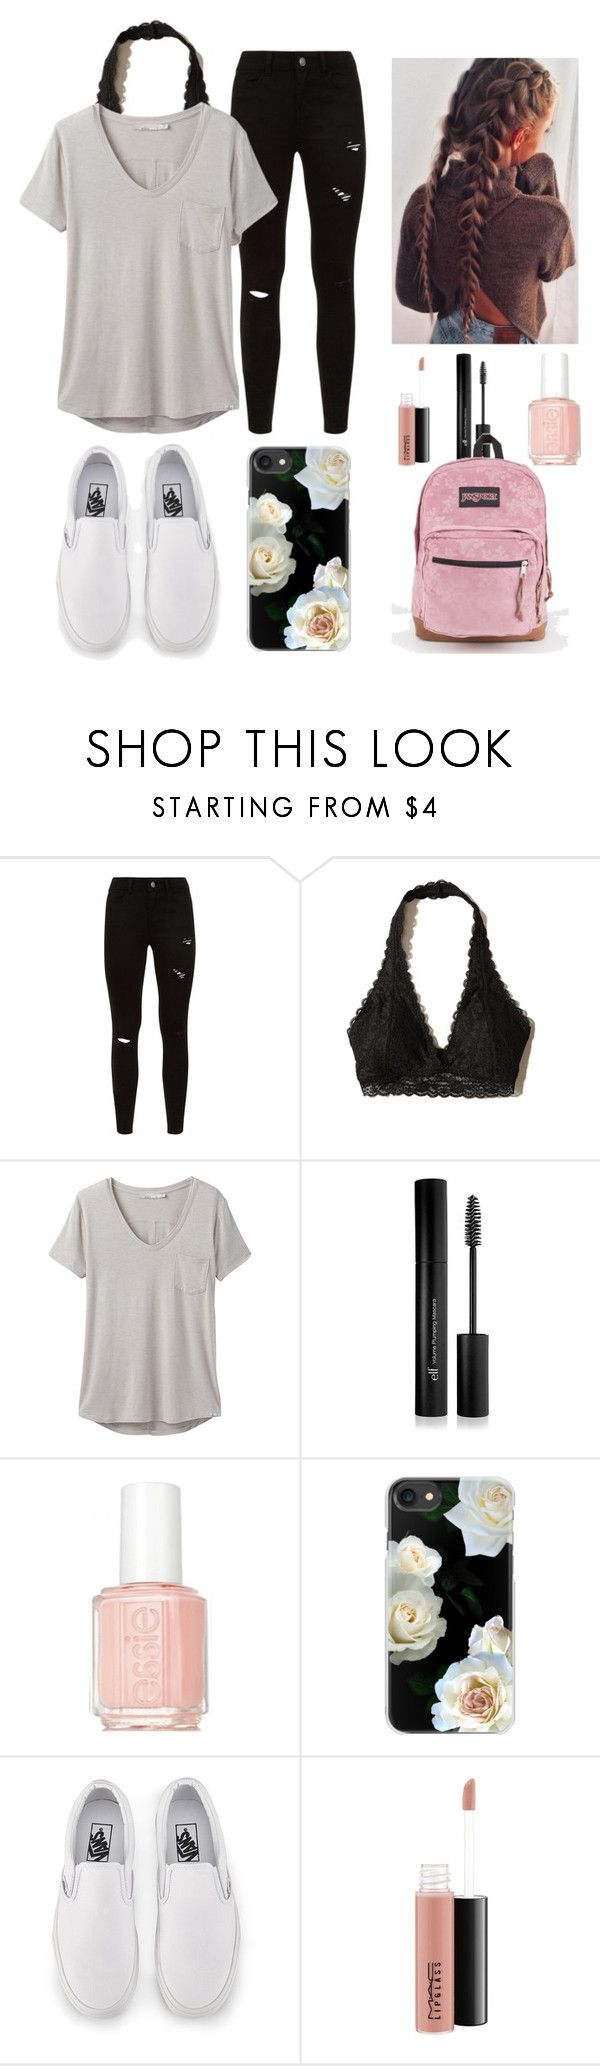 """Back to school set #1"" by ava83lewis on Polyvore featuring Hollister Co., prAna, Forever 21, Essie, Casetify, Vans, MAC Cosmetics and JanSport"